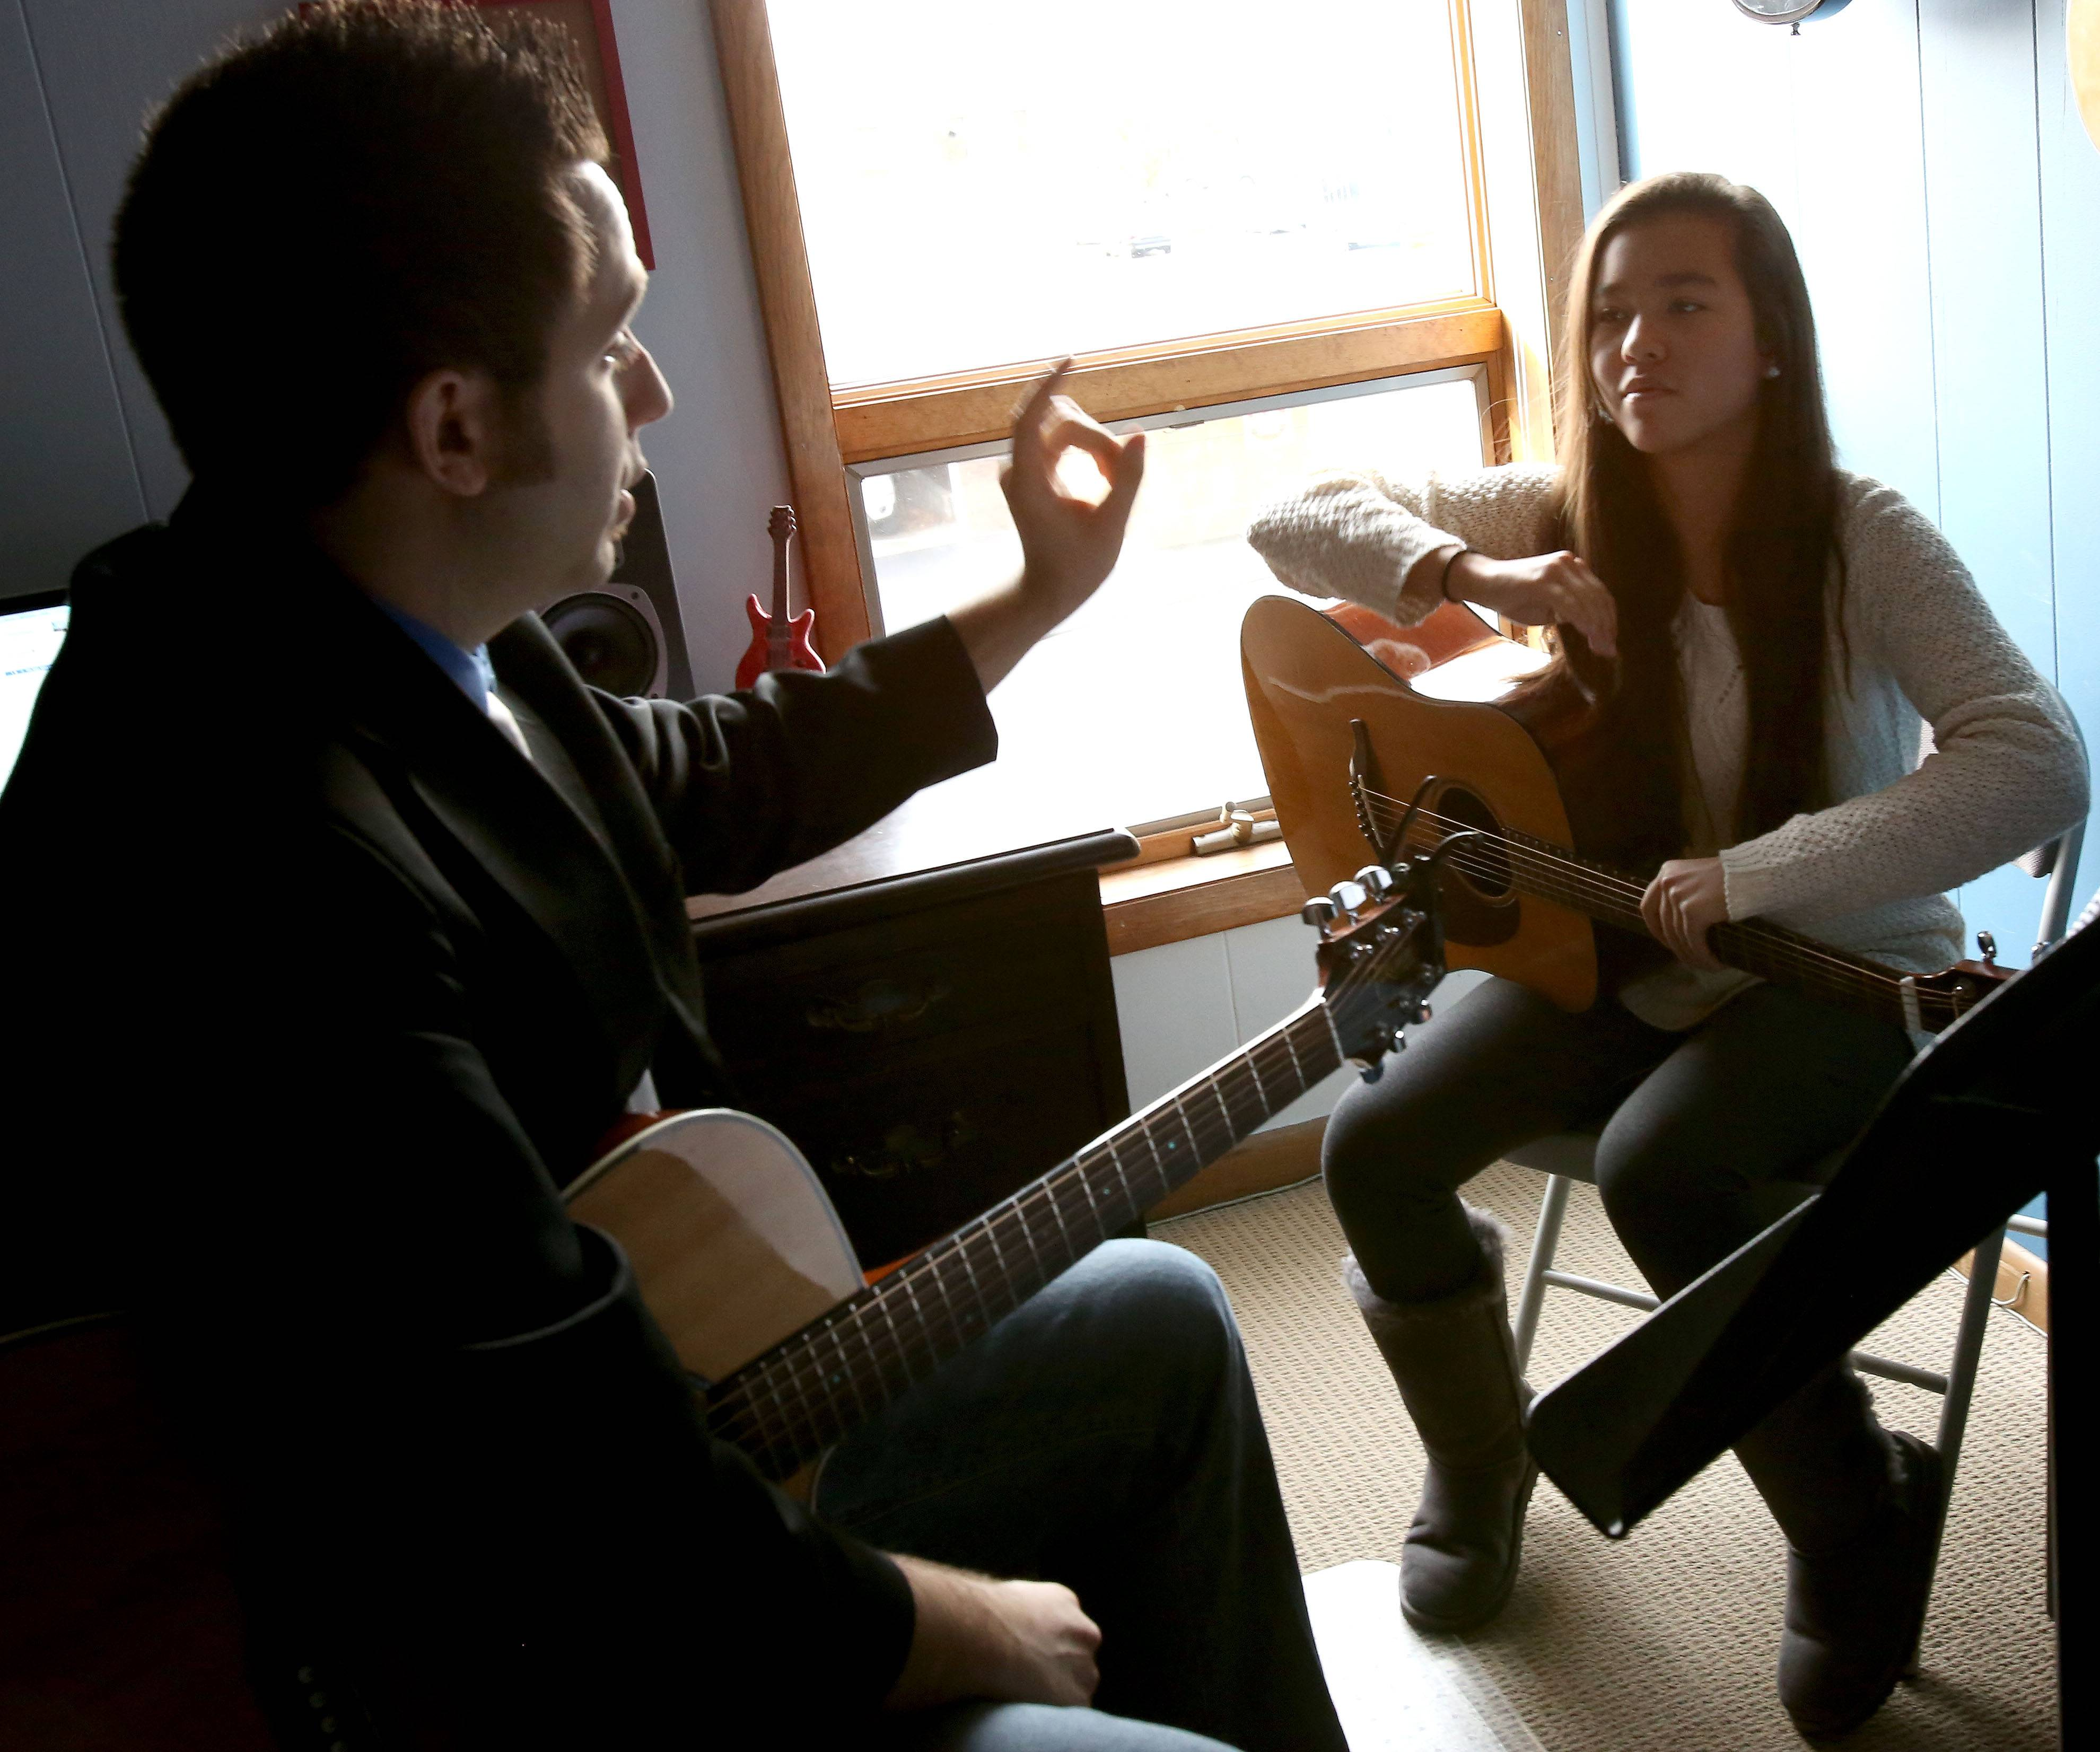 Isabella Hartnett, 13, of Glen Ellyn takes part in an acoustic guitar lesson with Jerry Evans at his recently expanded music school in downtown Wheaton.